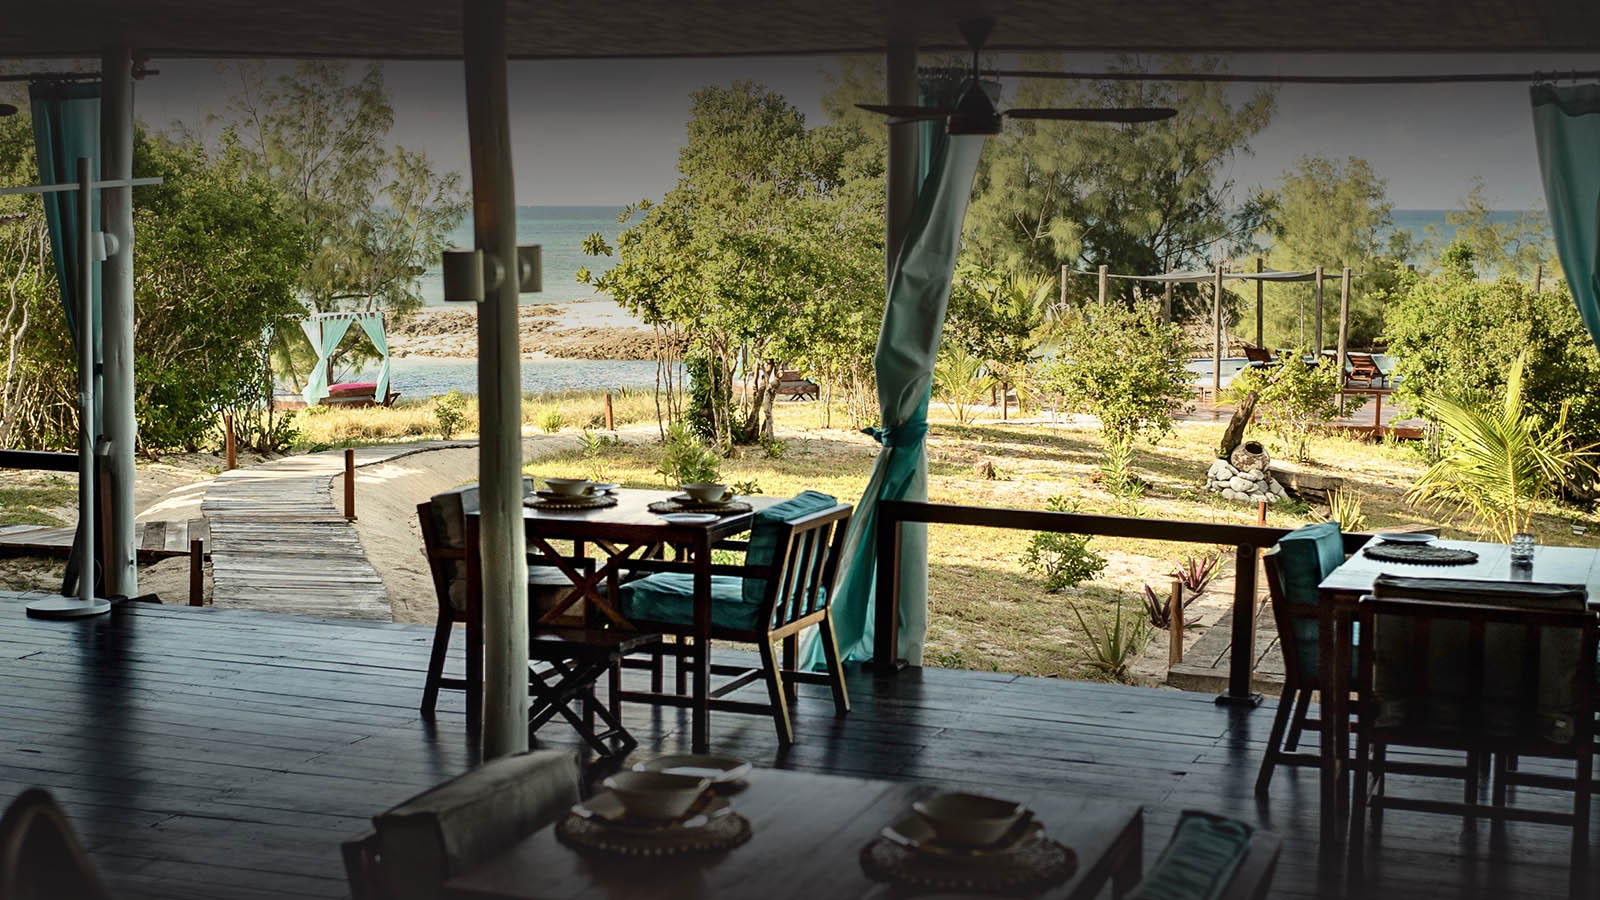 coral lodge nampula-province-mozambique-lodges-zambia-in-style-golden-beaches-restaurant-looking-over-ocean